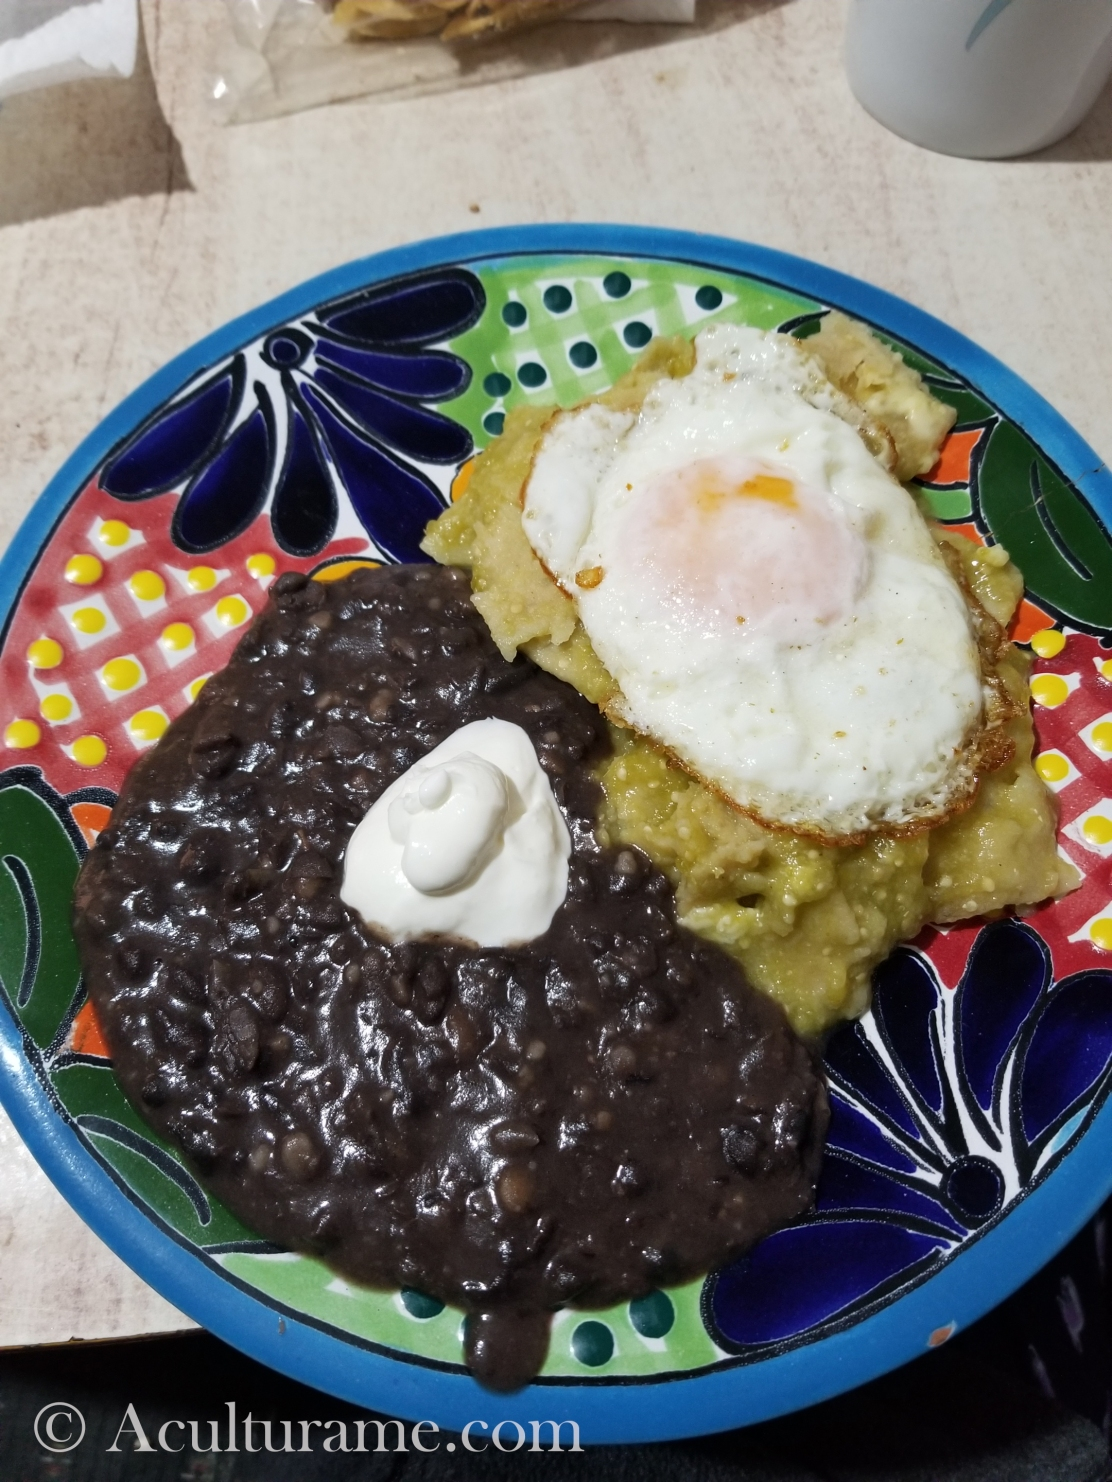 Chilaquiles Verdes is a traditional Mexican peasant dish made with fried tortillas and green or red salsa.